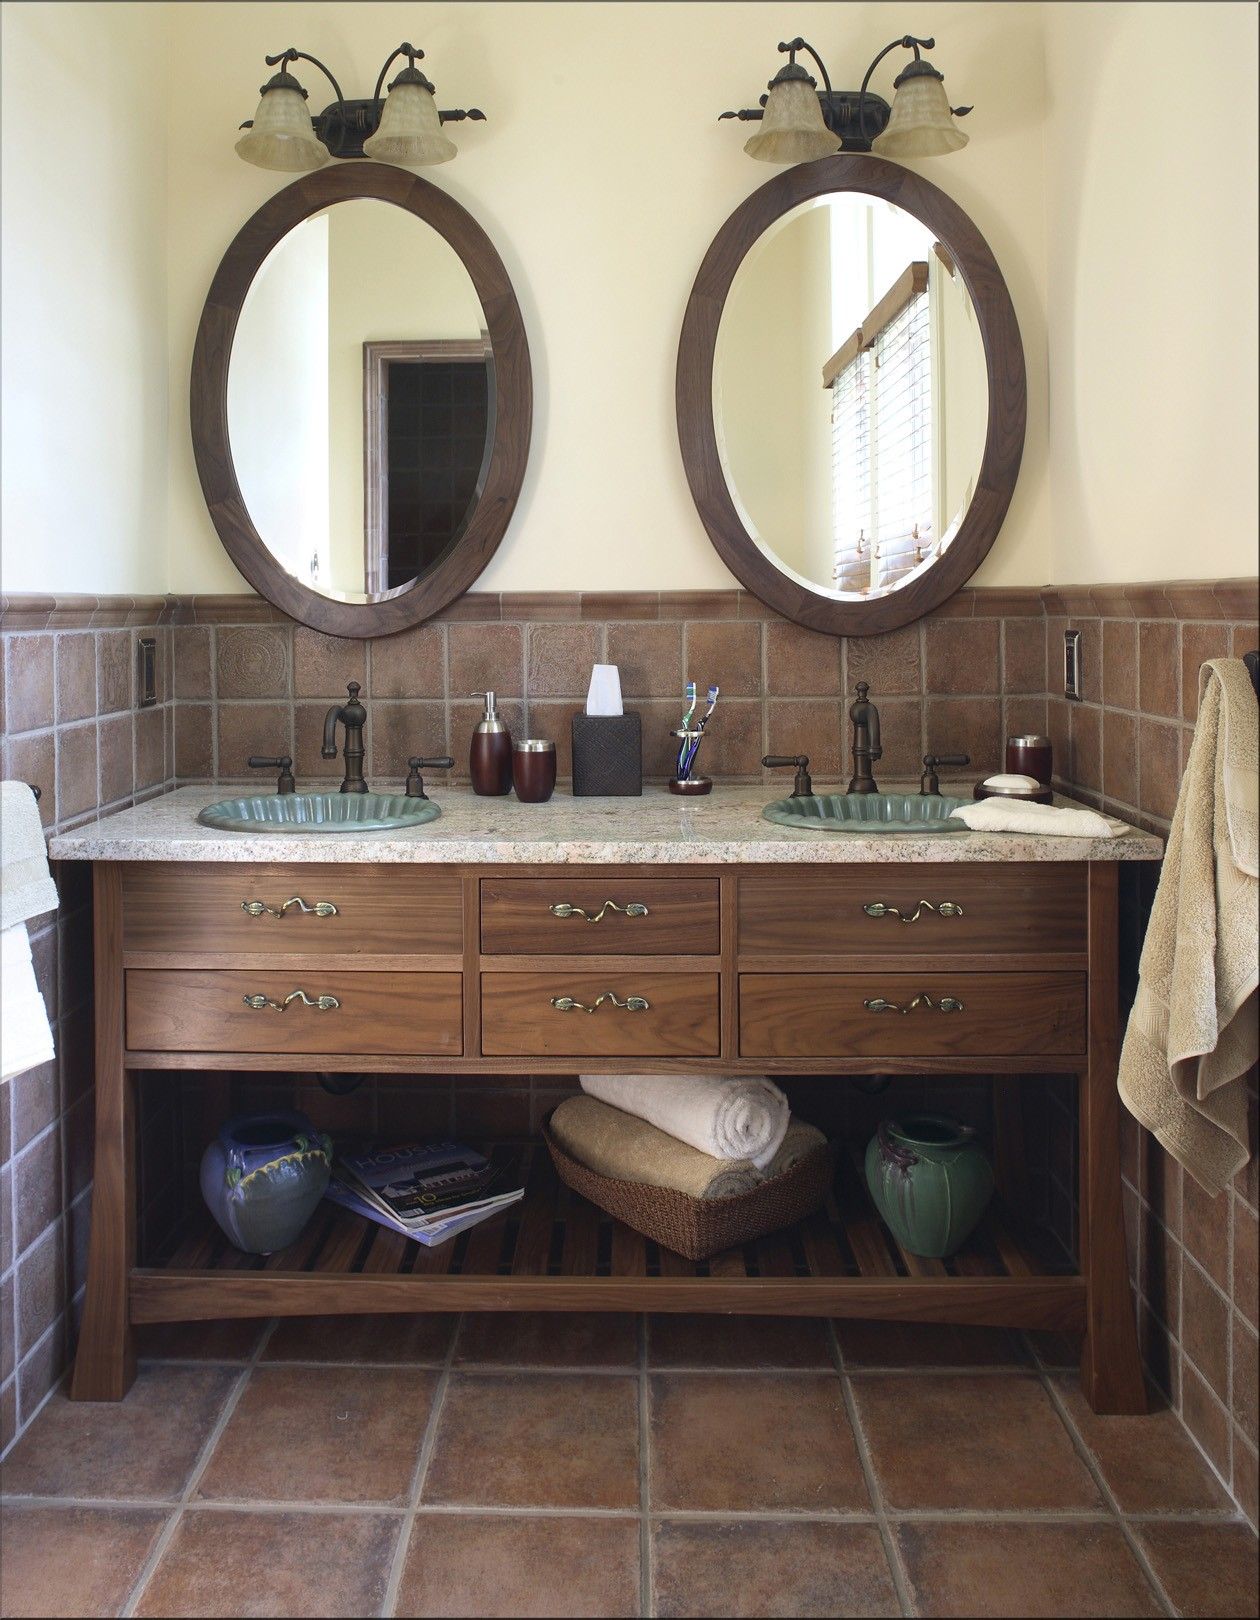 Vanity Light Above Oval Mirror : The Best Wall Mirror Design for Your Bathroom in Elegant Shape that You Must Have HomesFeed